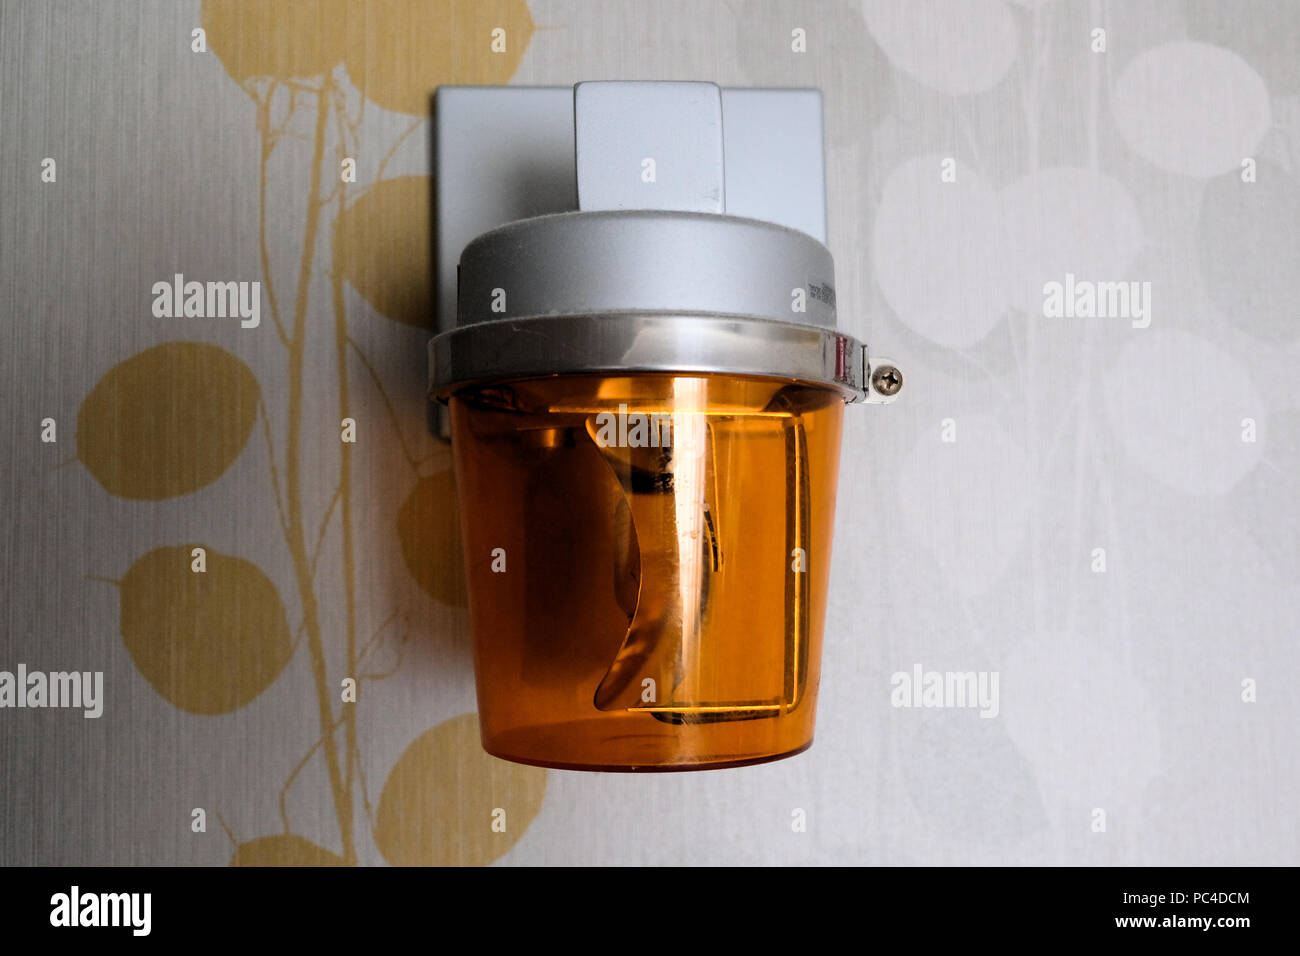 Fire alarm alert system in hotel room. - Stock Image